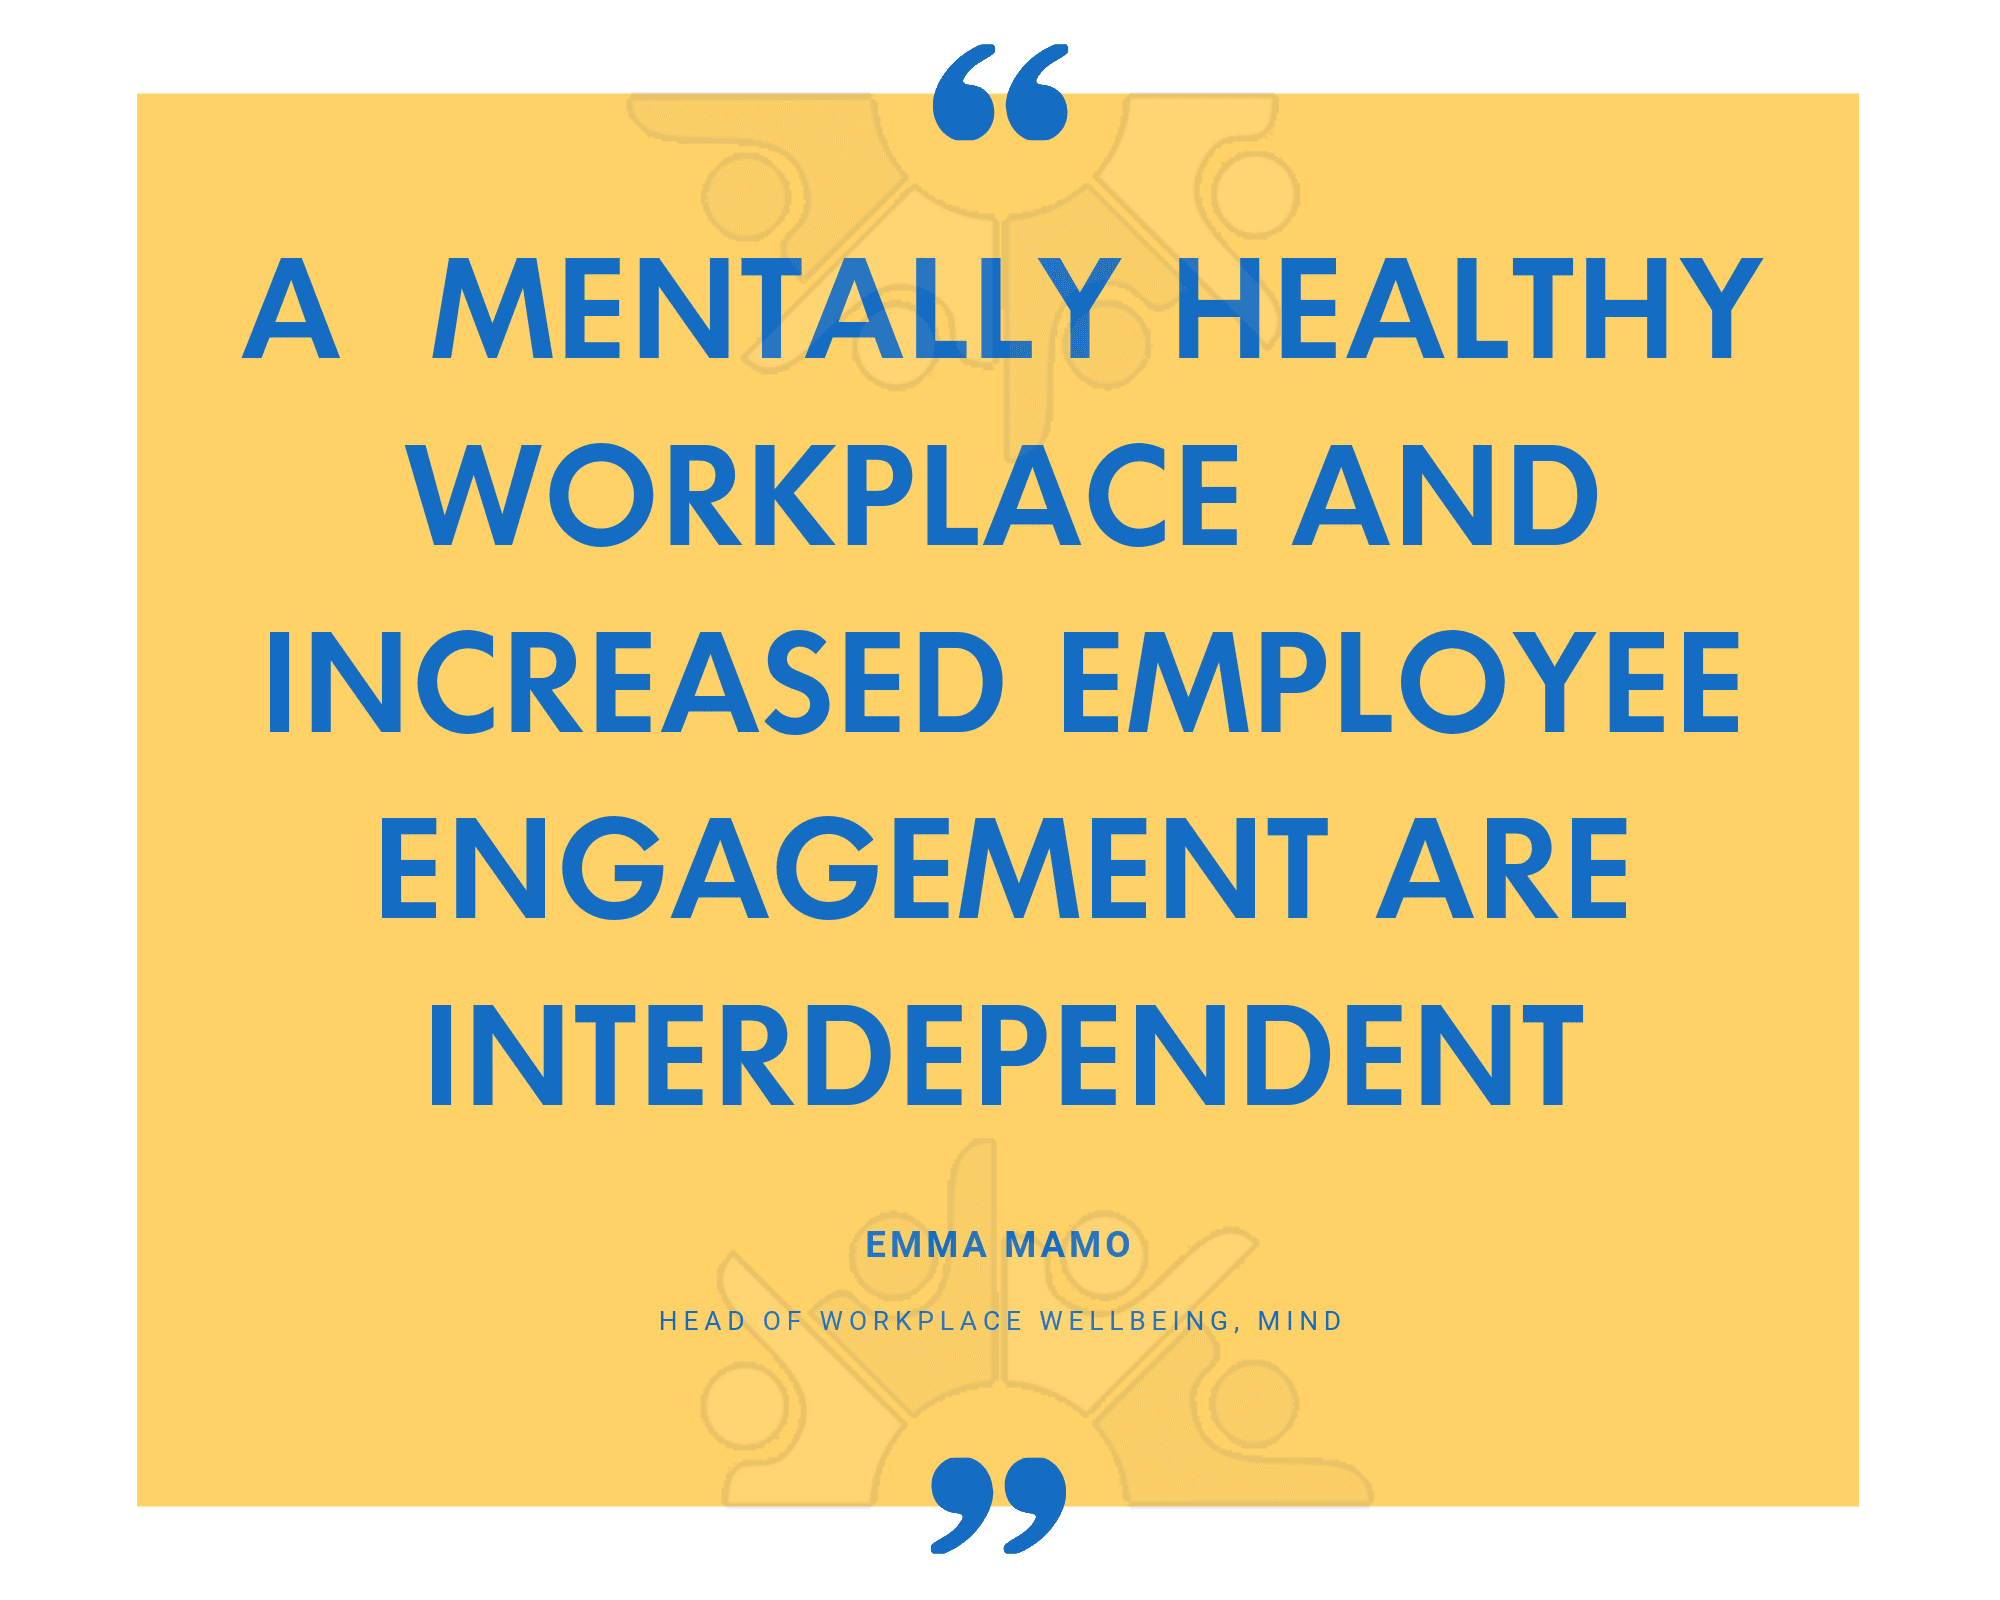 QUOTE mentally healthy workplace and increased employee engagement are interdependent